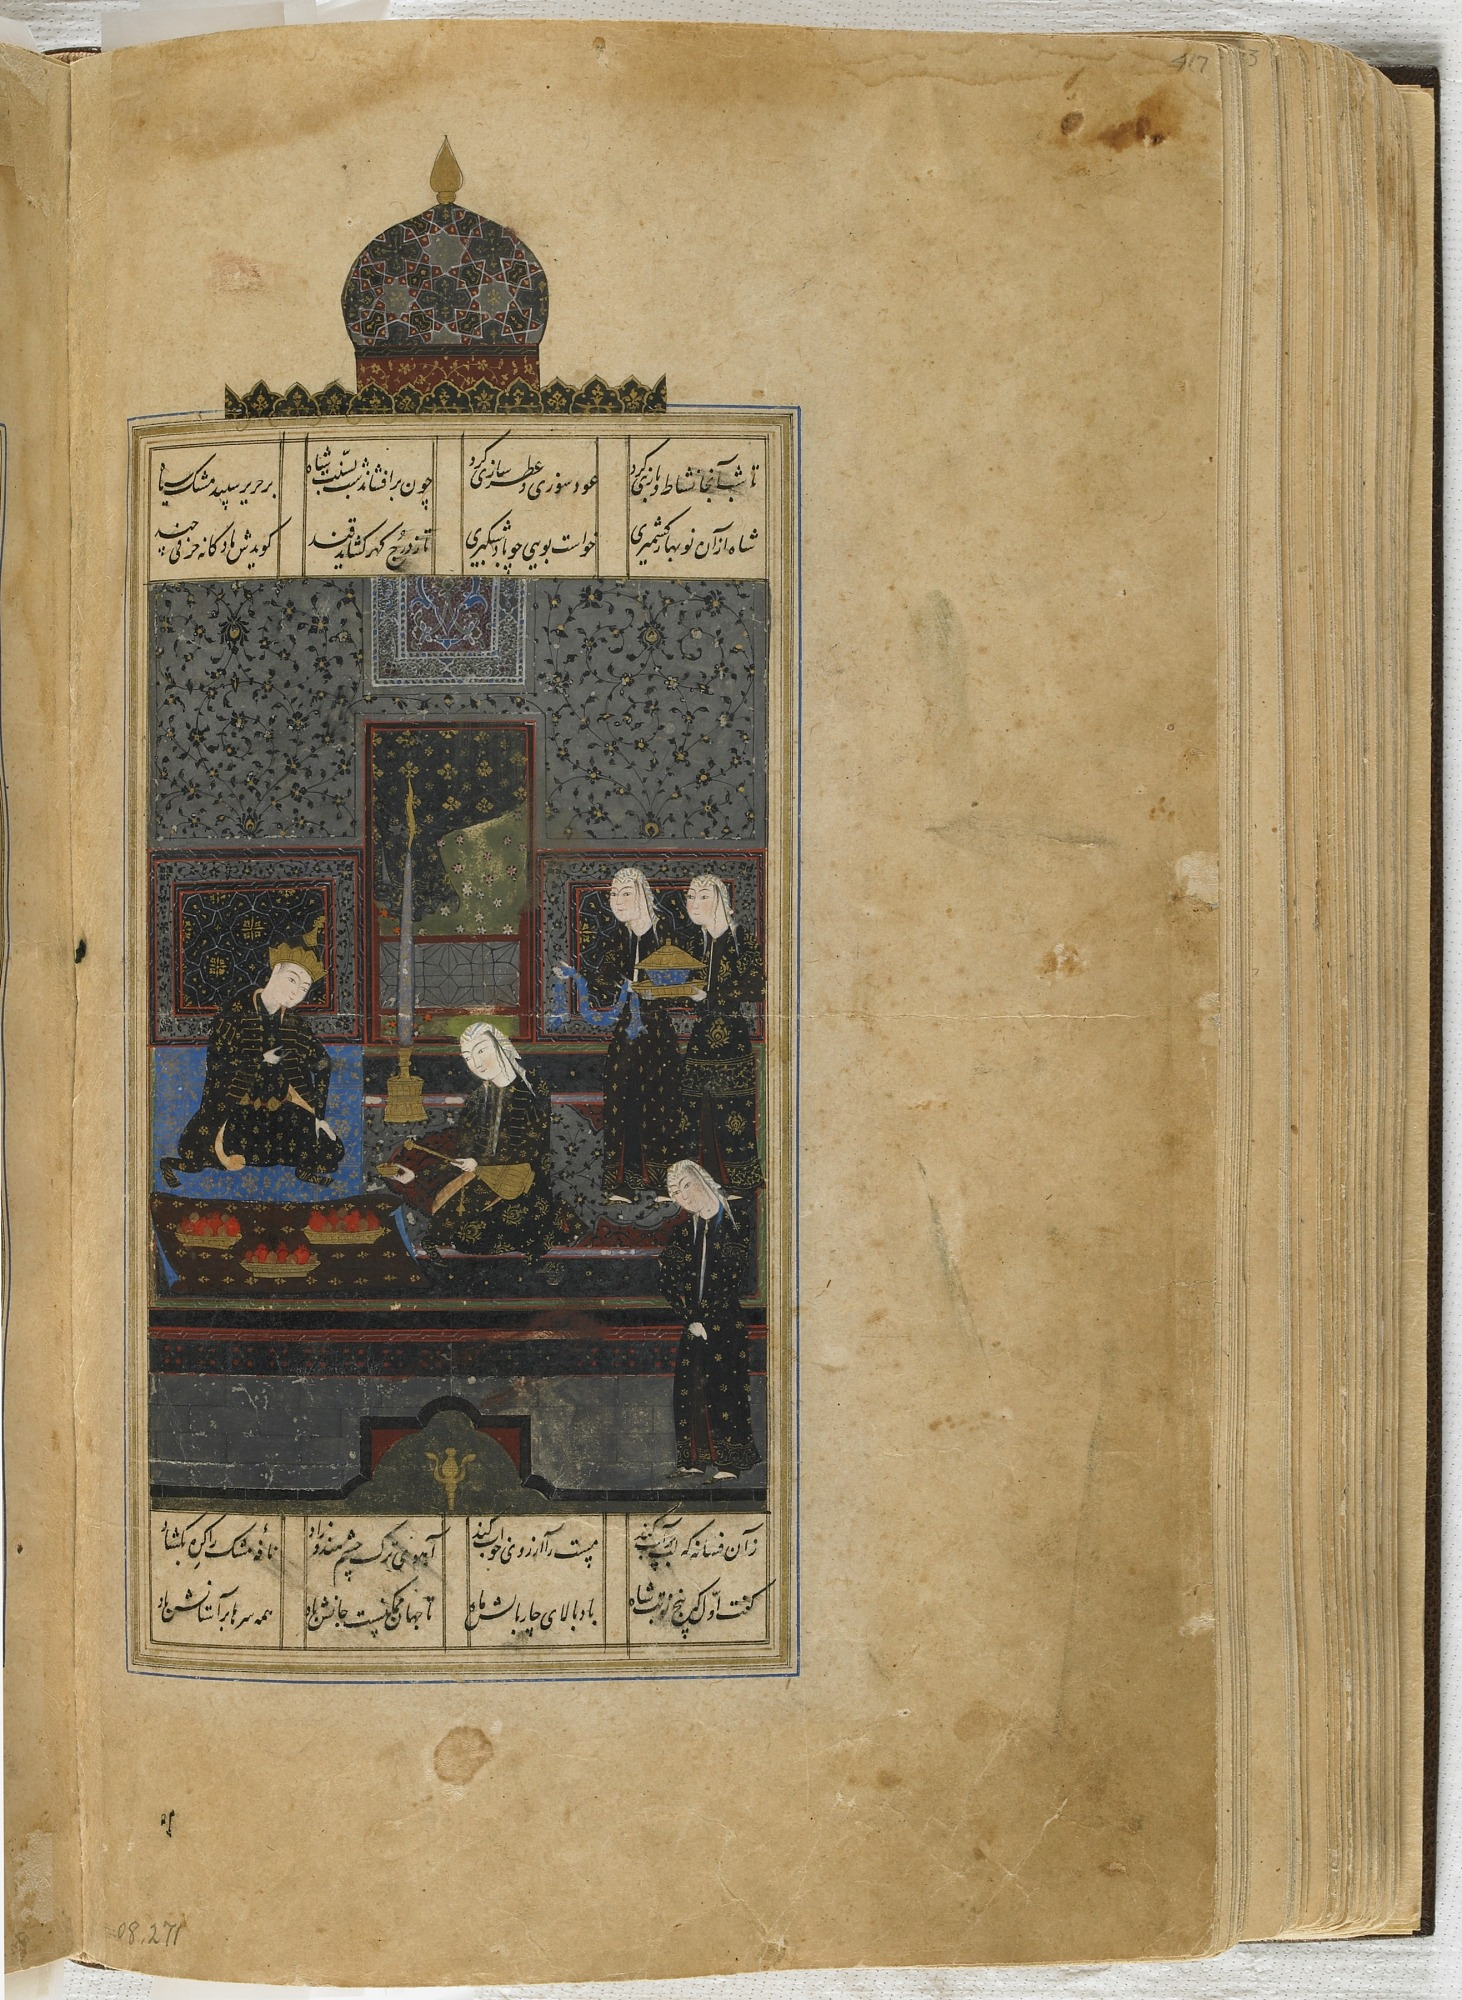 Folio from a Khamsa (Quintet) by Nizami (d.1209); verso: illustration: Bahram Gur and the Indian princess in the black pavilion; recto: text